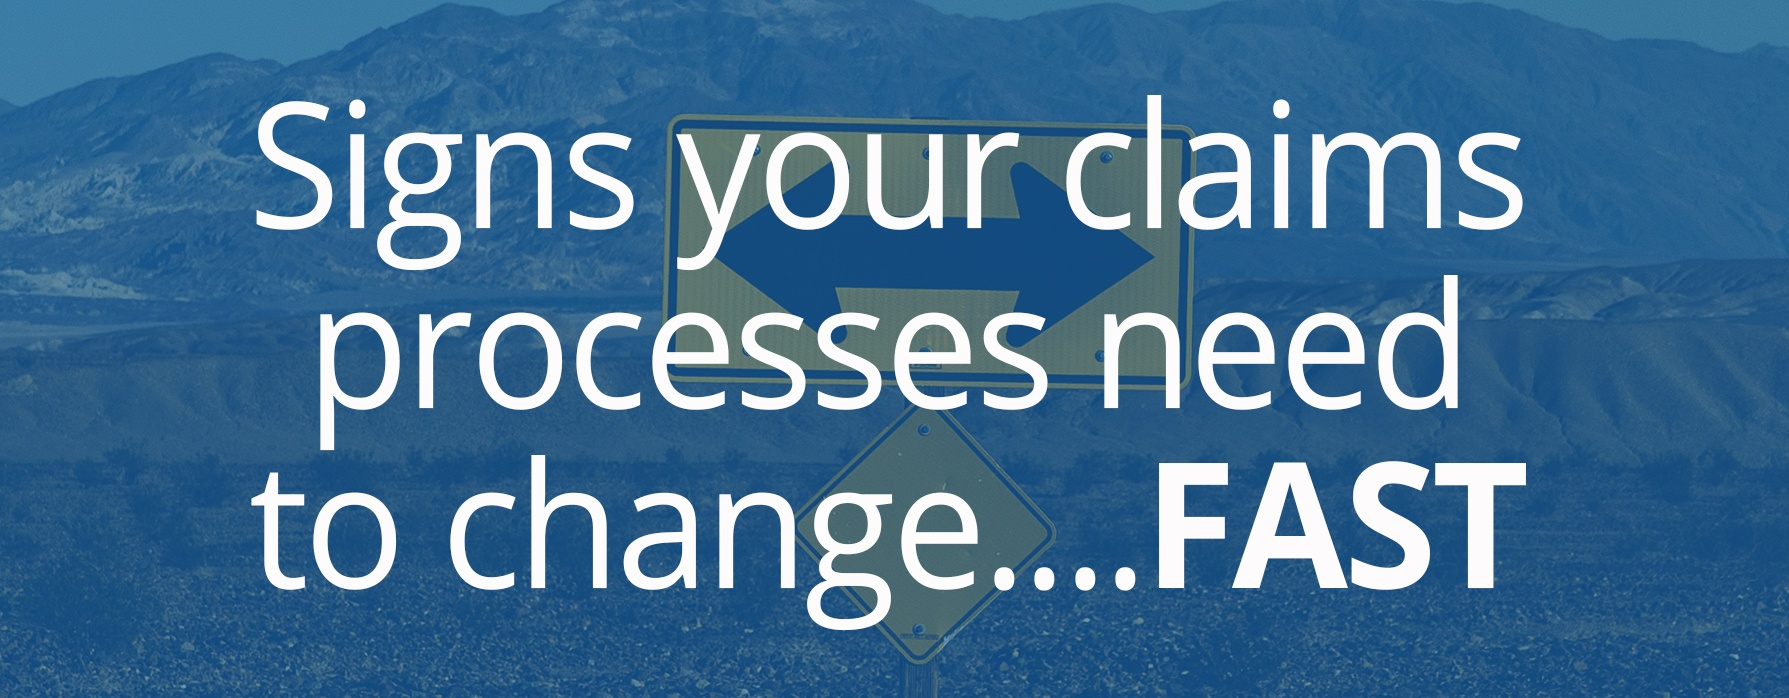 signs your claims processes need to change fast